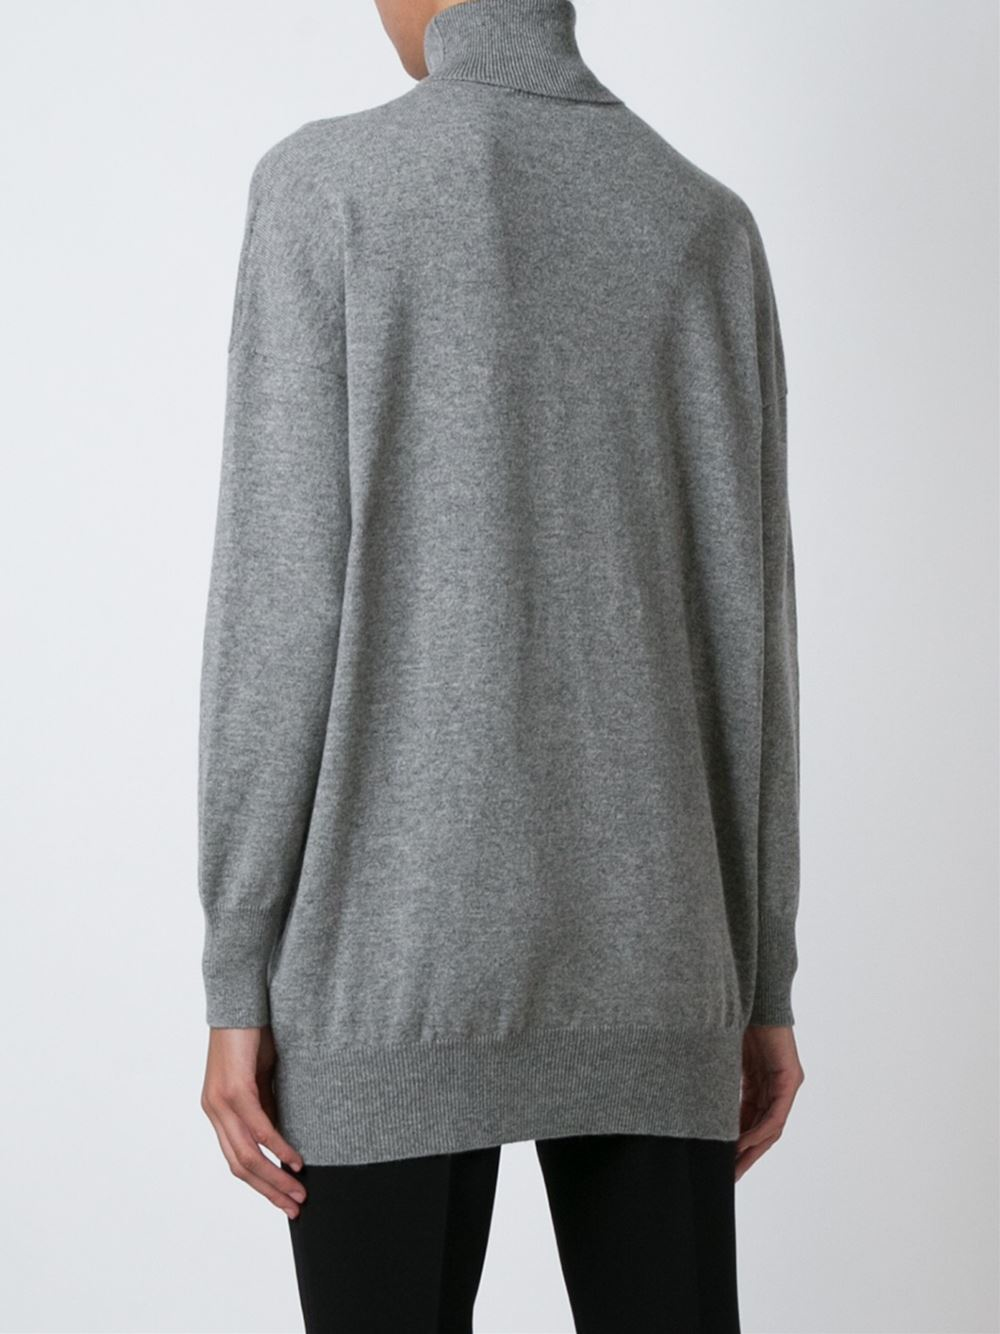 Gucci Cashmere Sweater in Gray | Lyst